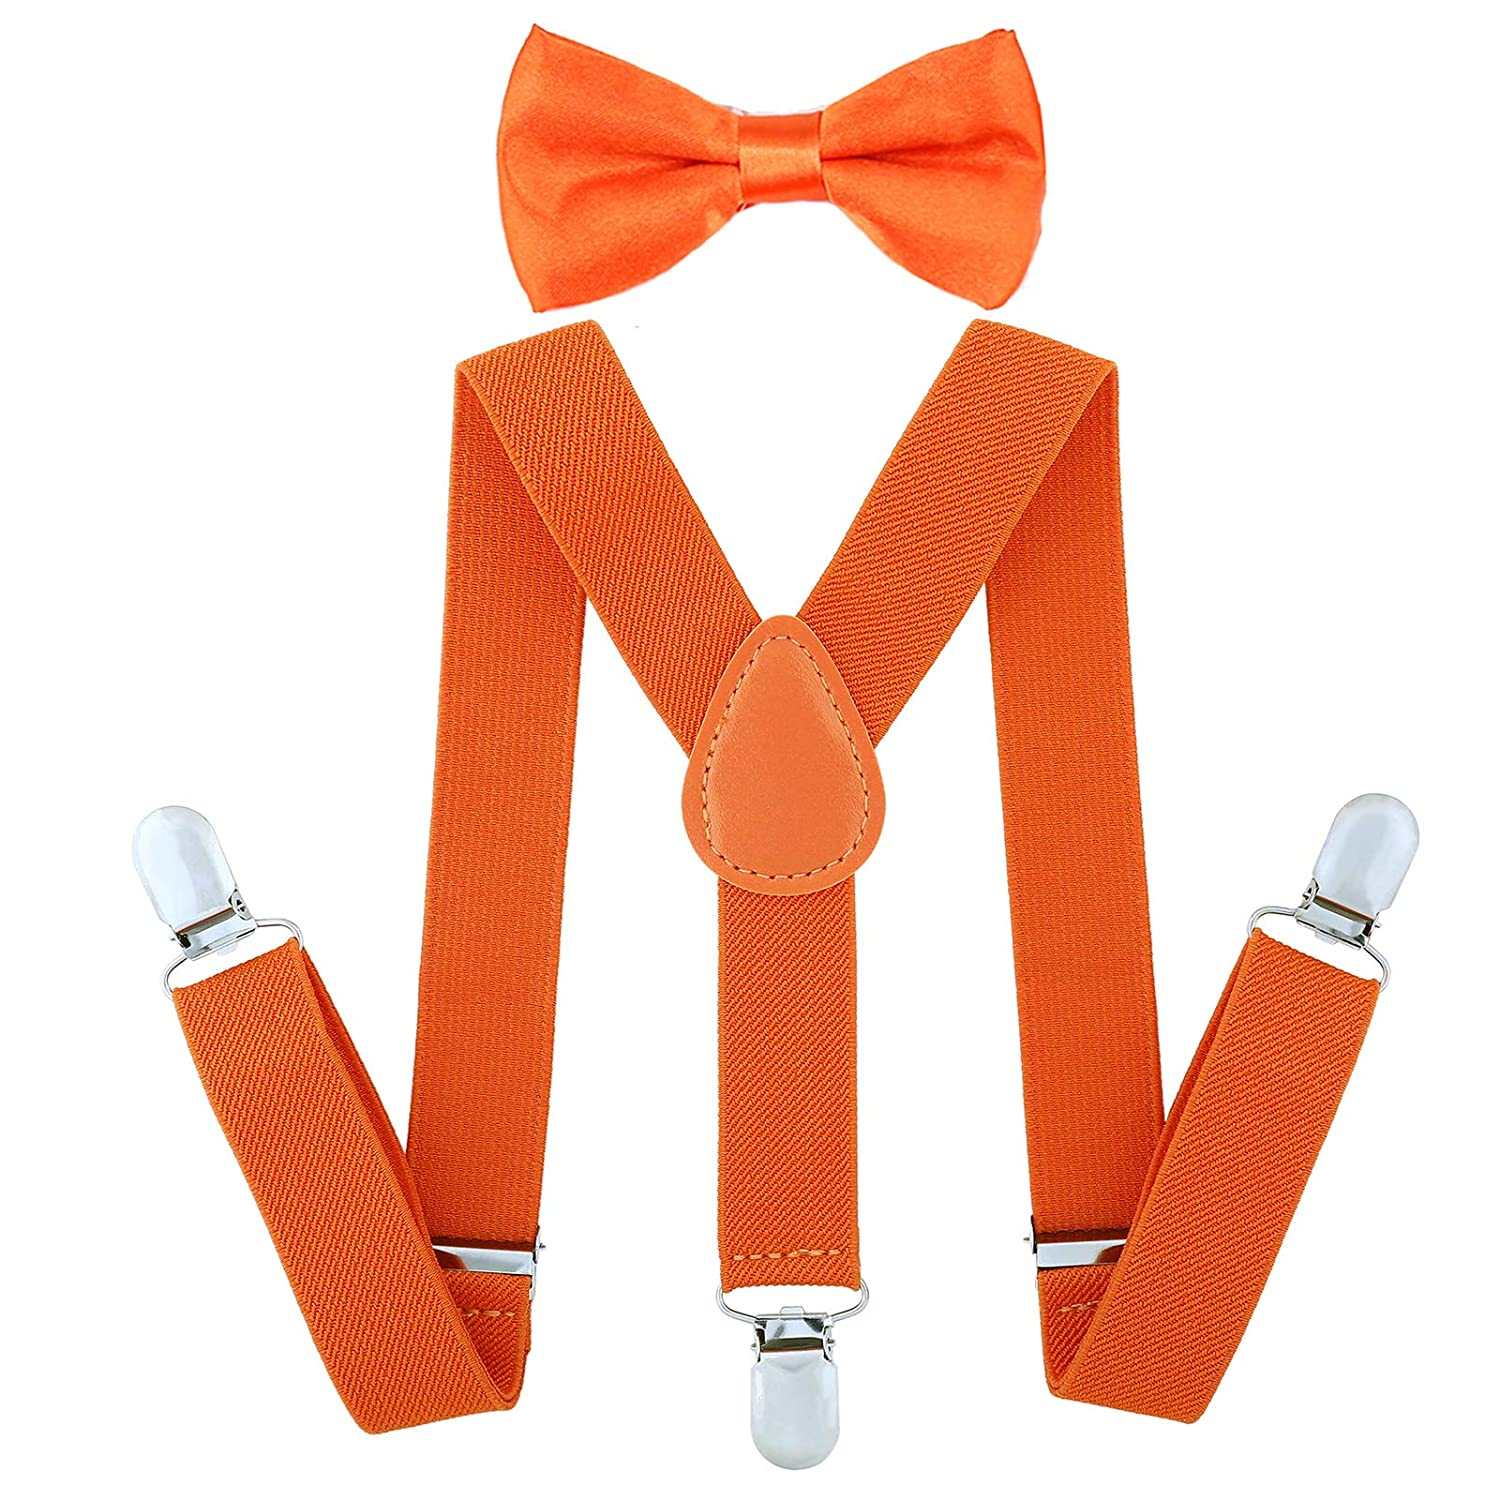 Child Kids Suspenders Bowtie Set - Adjustable Length 1 Inches Suspender with Bow Tie Set for Boys and Girls (Red) 608255065371